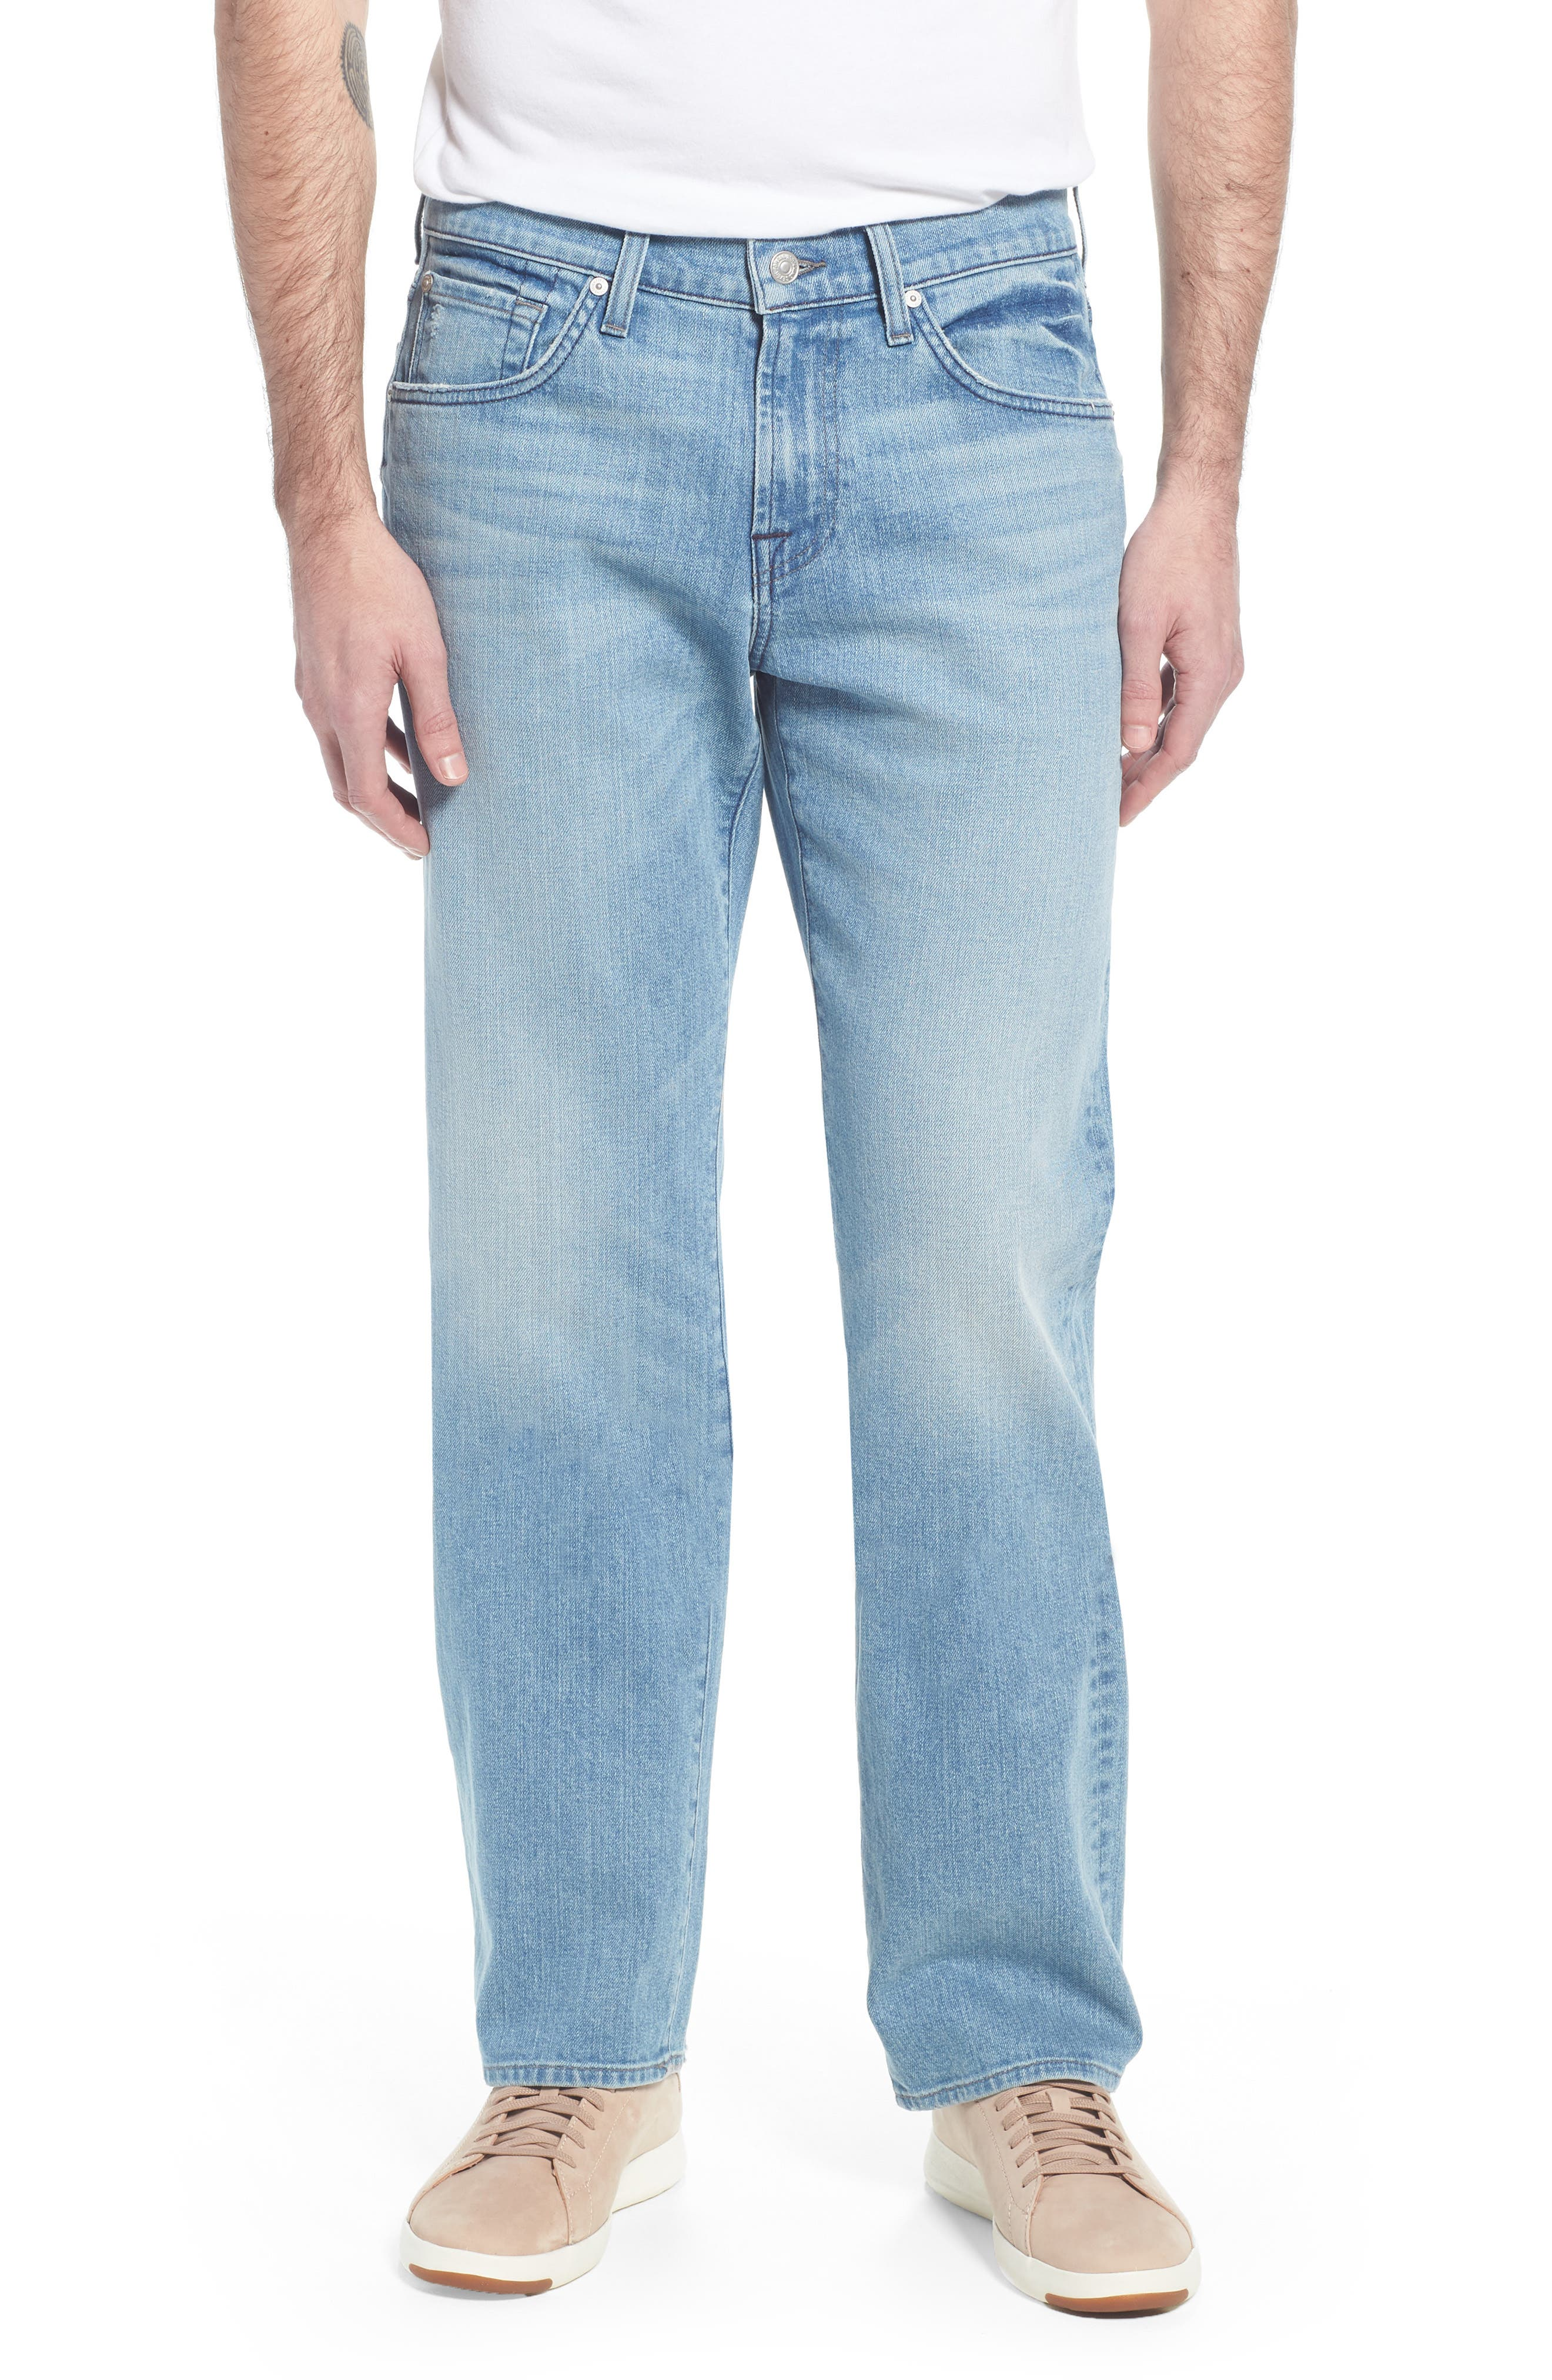 Austyn Relaxed Fit Jeans,                             Main thumbnail 1, color,                             Omega